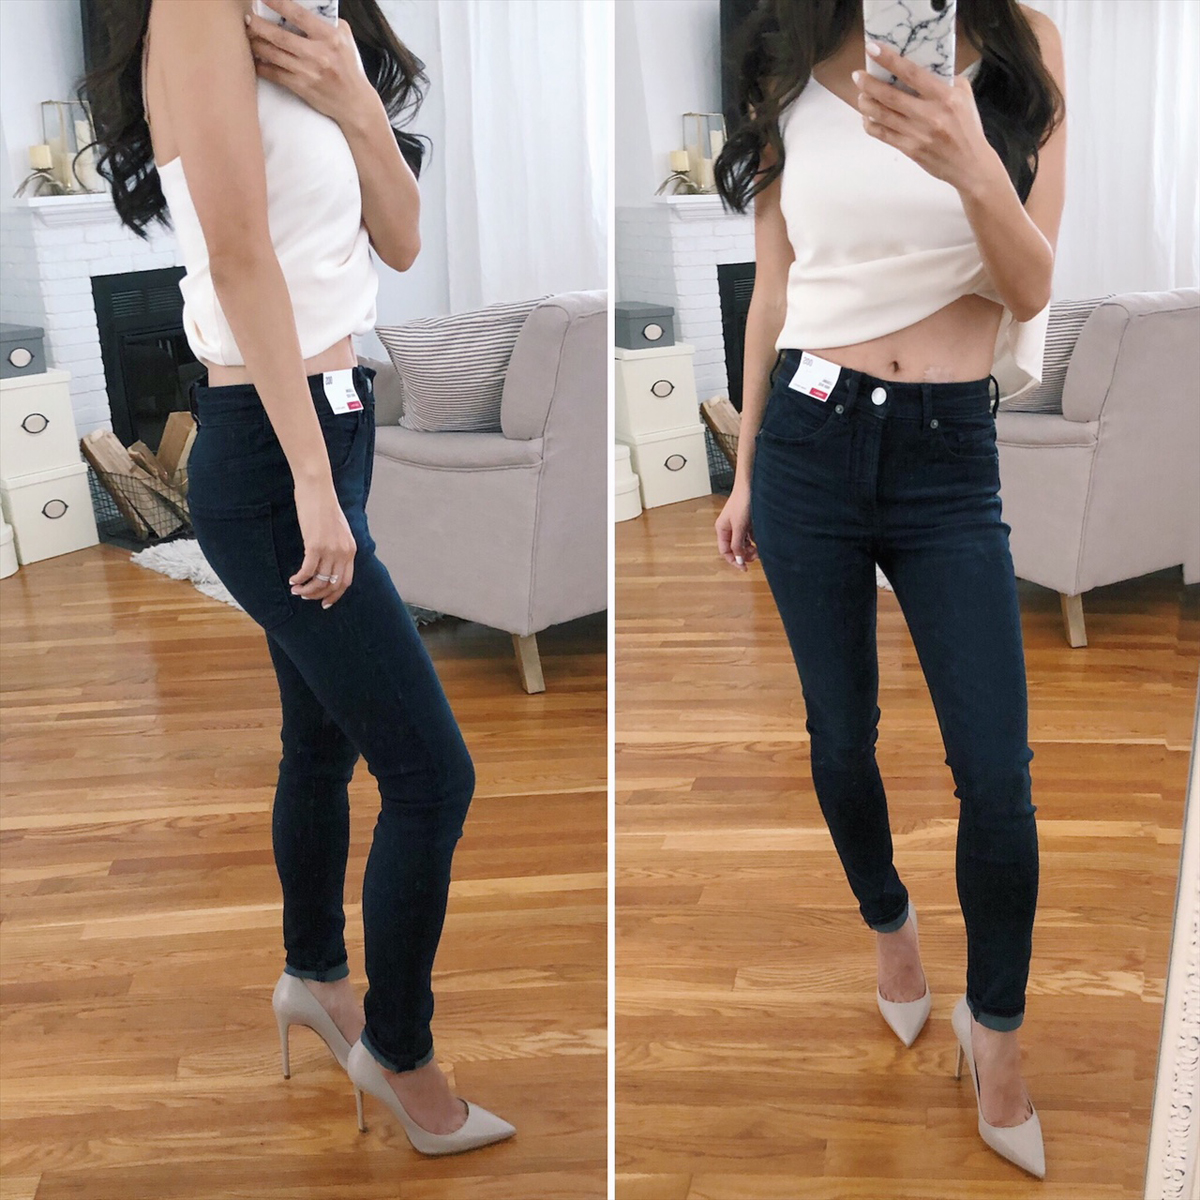 short inseam jeans for petite women fashion blog